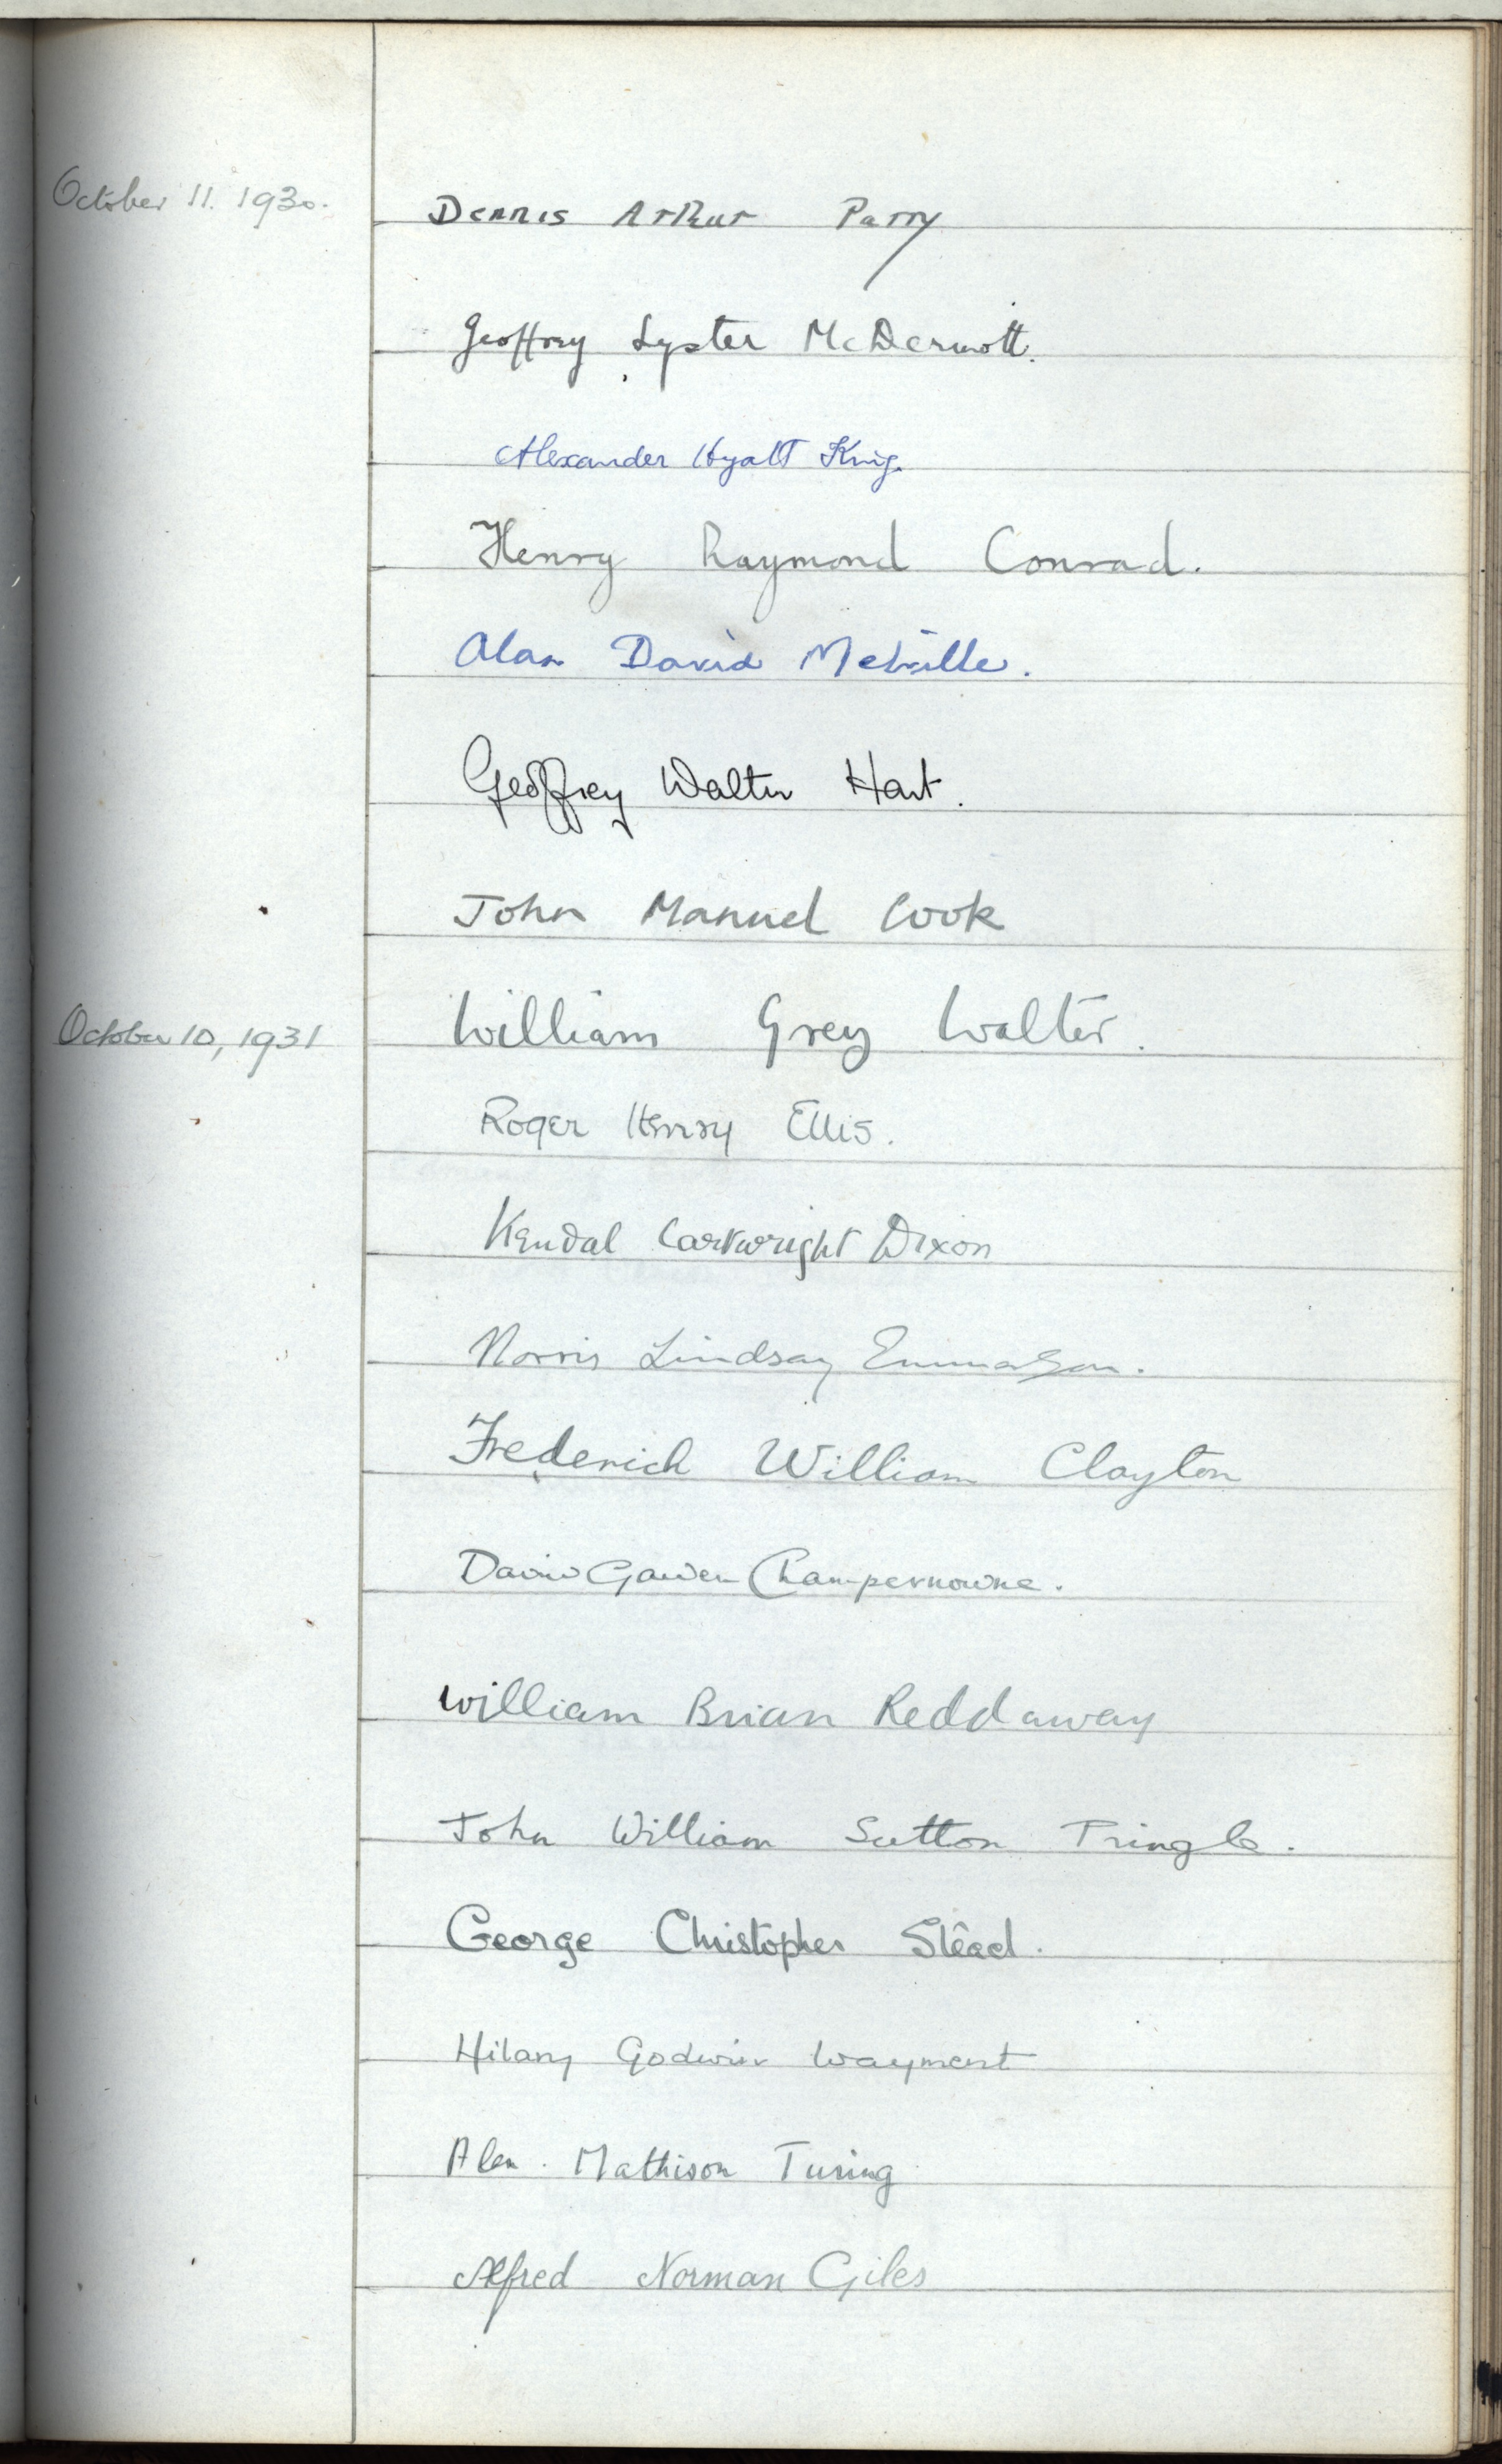 Turing's signature in the Scholar's book promising to uphold the College statutes. [KCAC/2/5]